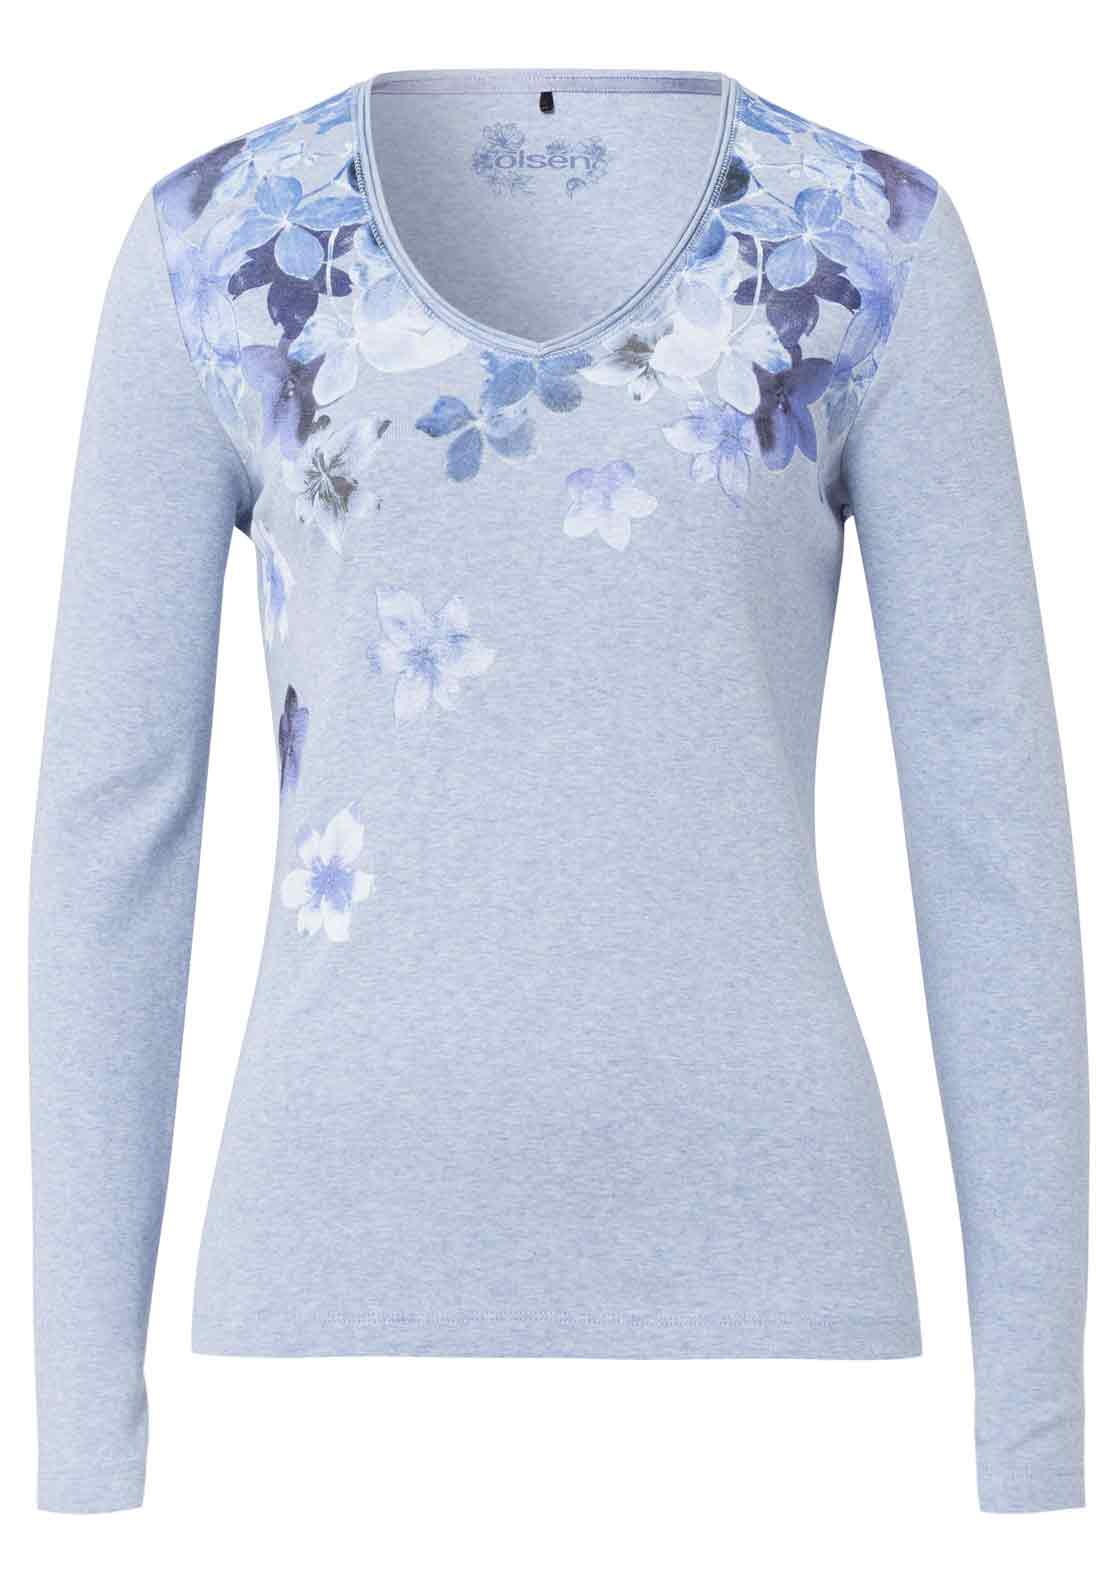 Olsen Floral Print Long Sleeve T-Shirt, Pale Blue